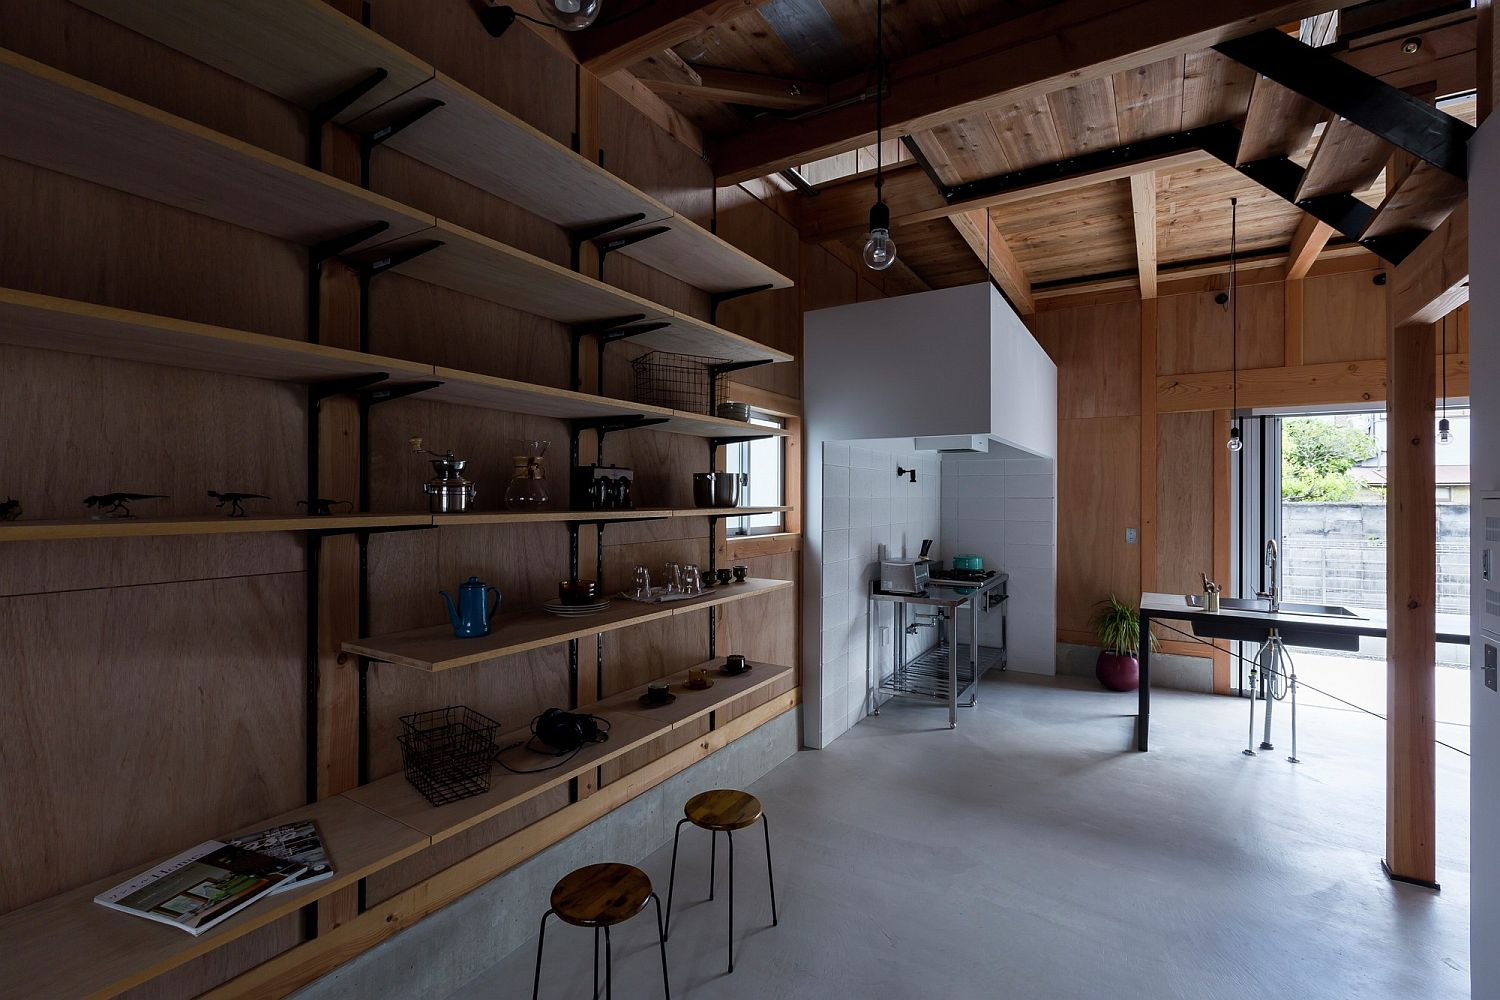 Sleek wooden shelves and open spaces offer flexible and minimal living environment